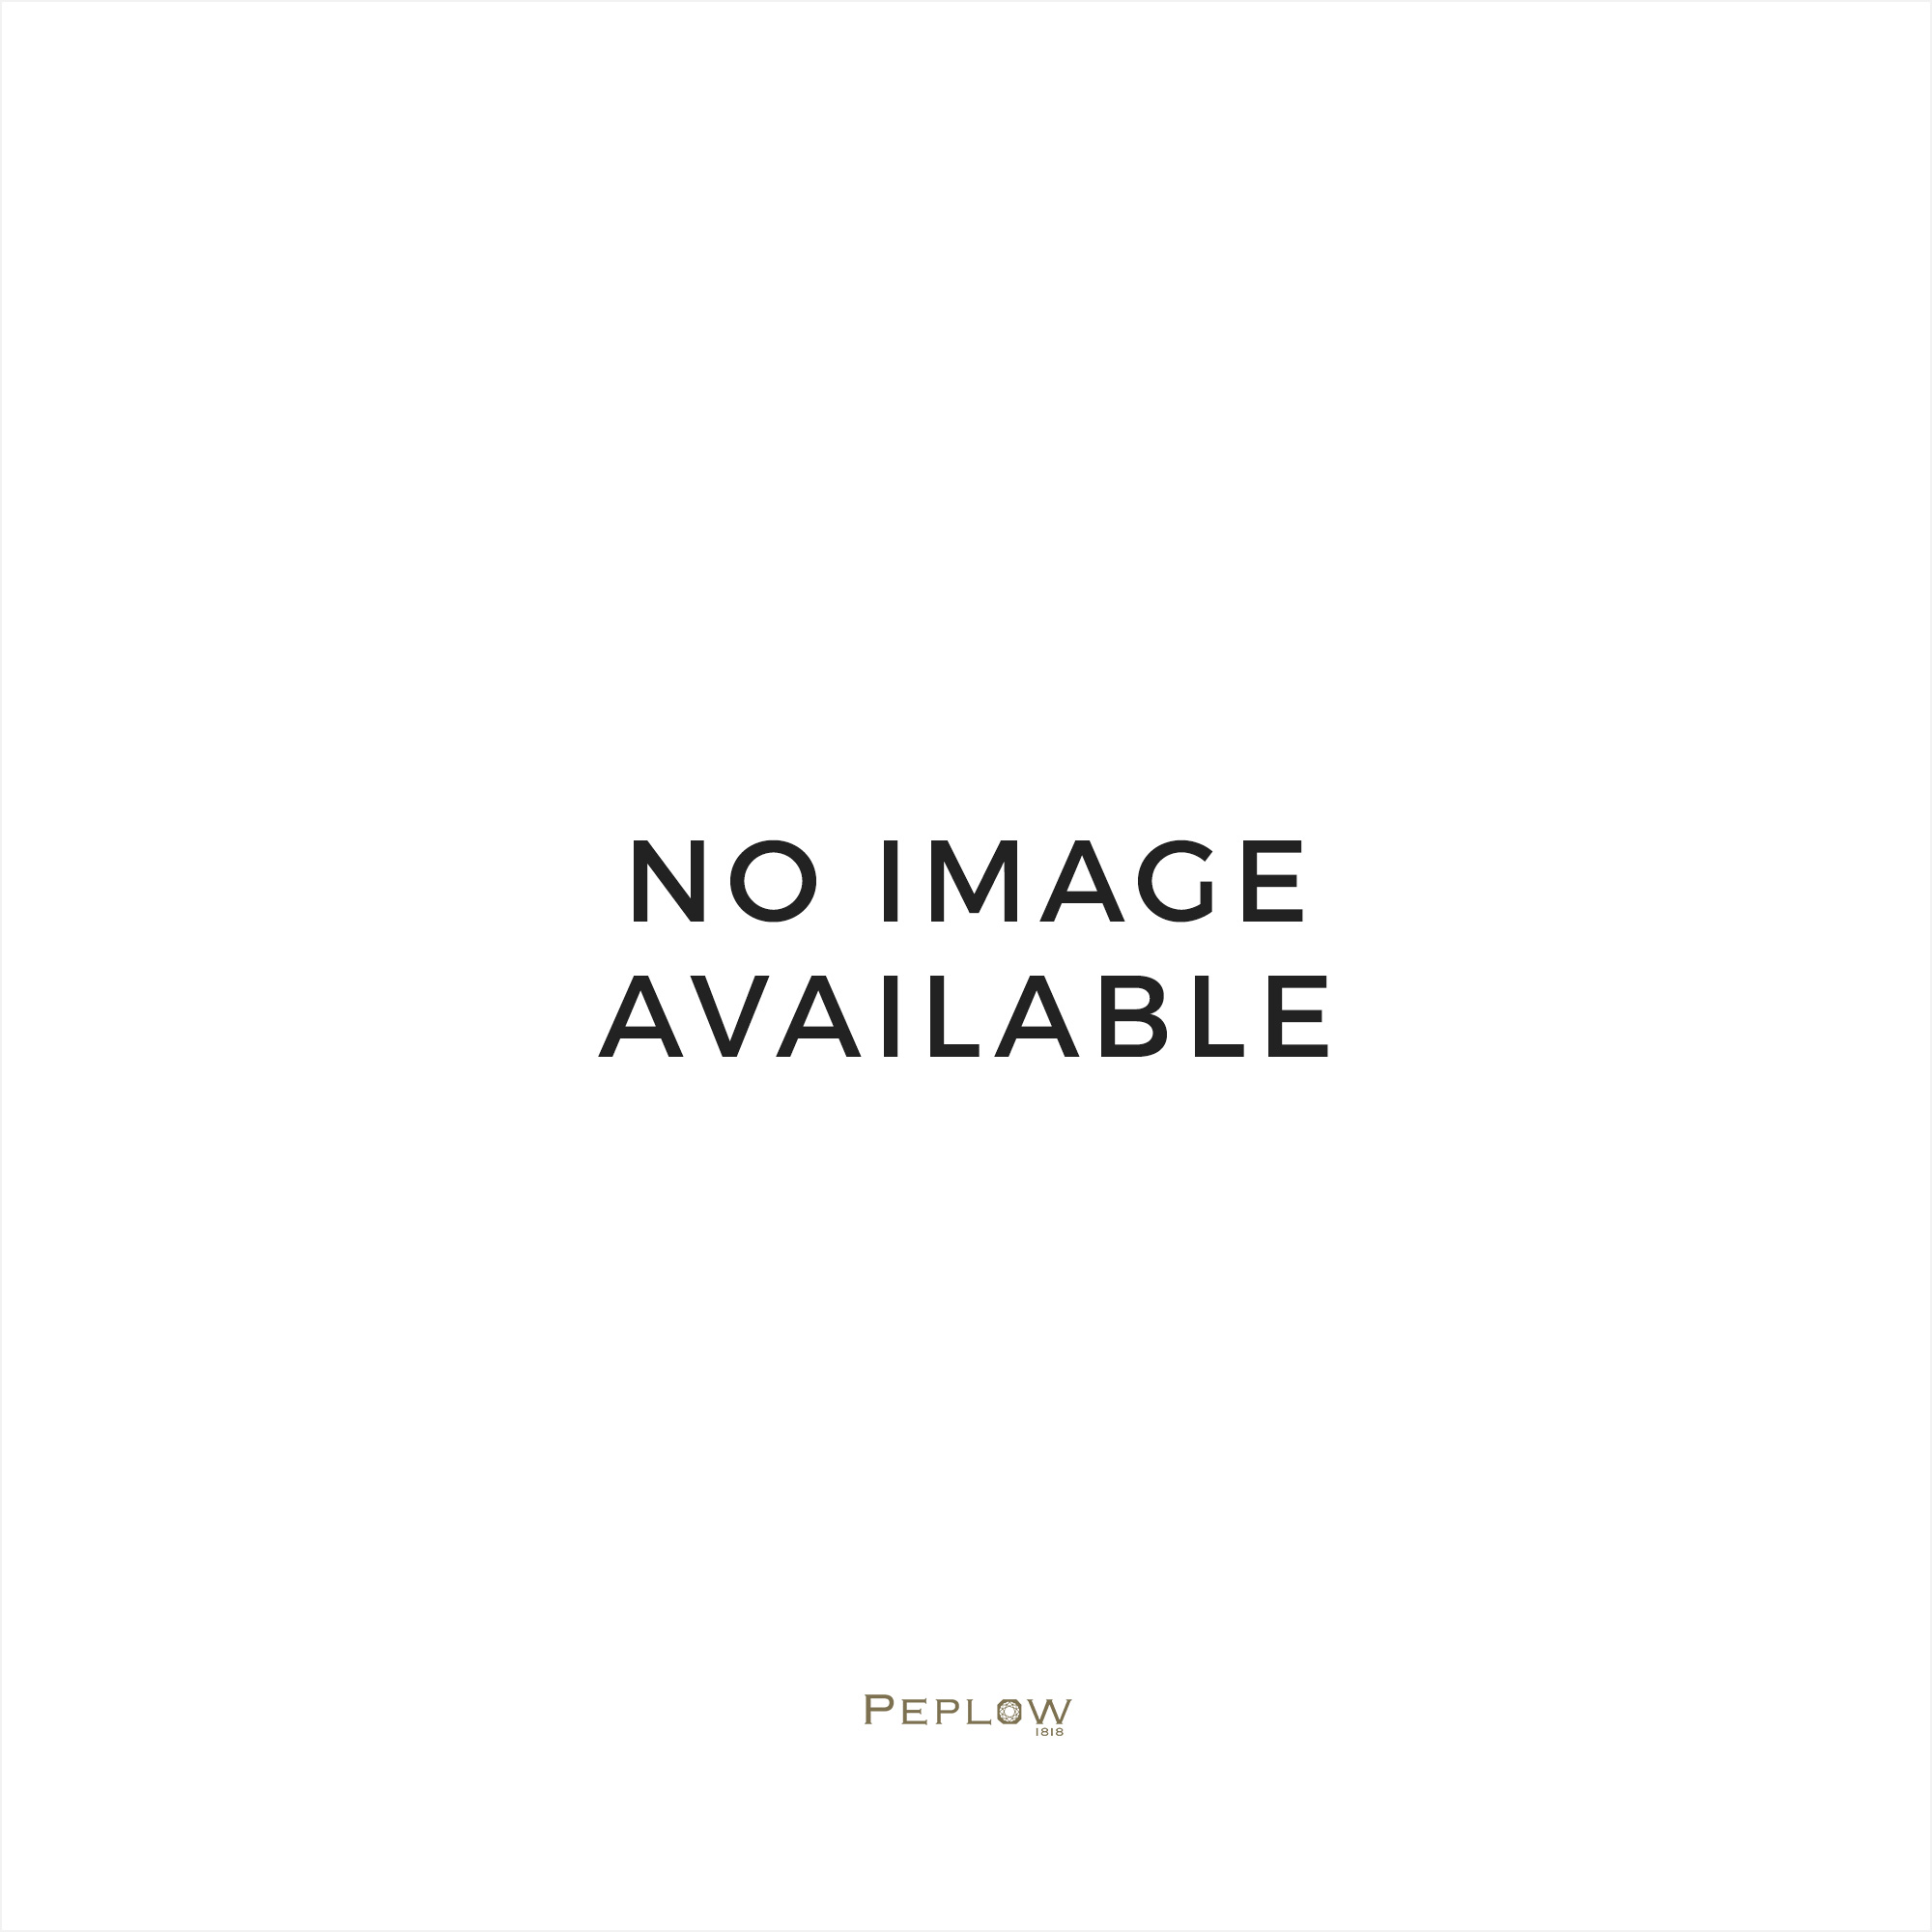 Gts gold plated Bering mesh bracelet watch